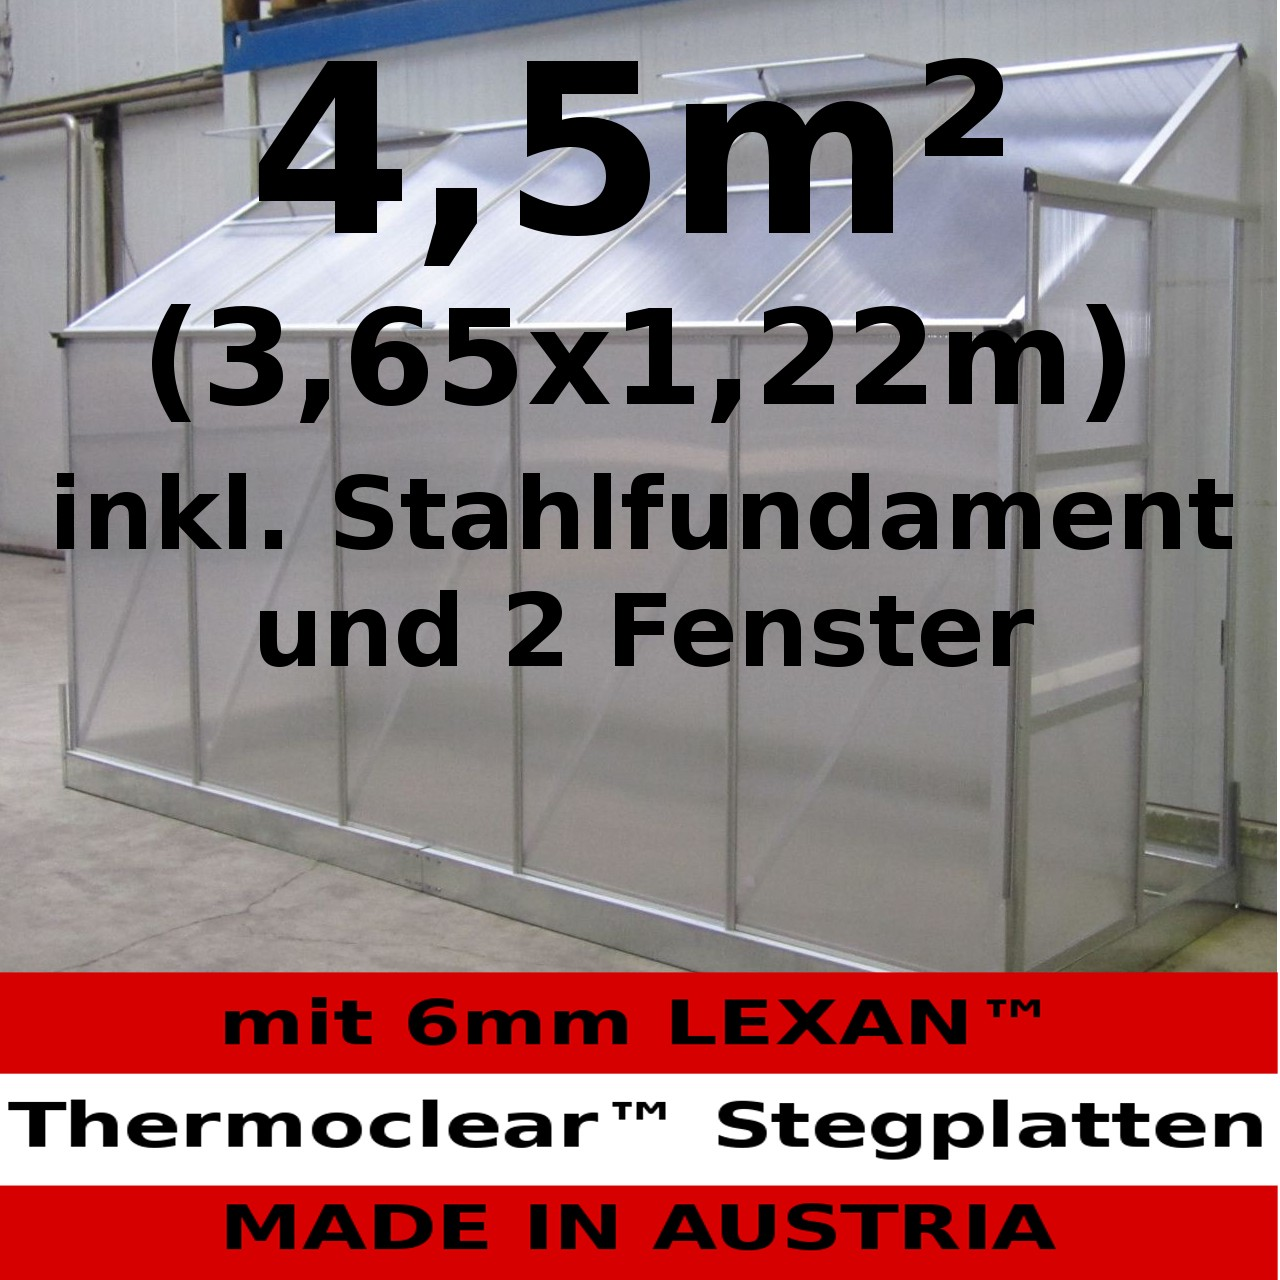 4 5m anlehn gew chshaus anlehngew chshaus glashaus 6mm stegplatten 2 fenster ebay. Black Bedroom Furniture Sets. Home Design Ideas